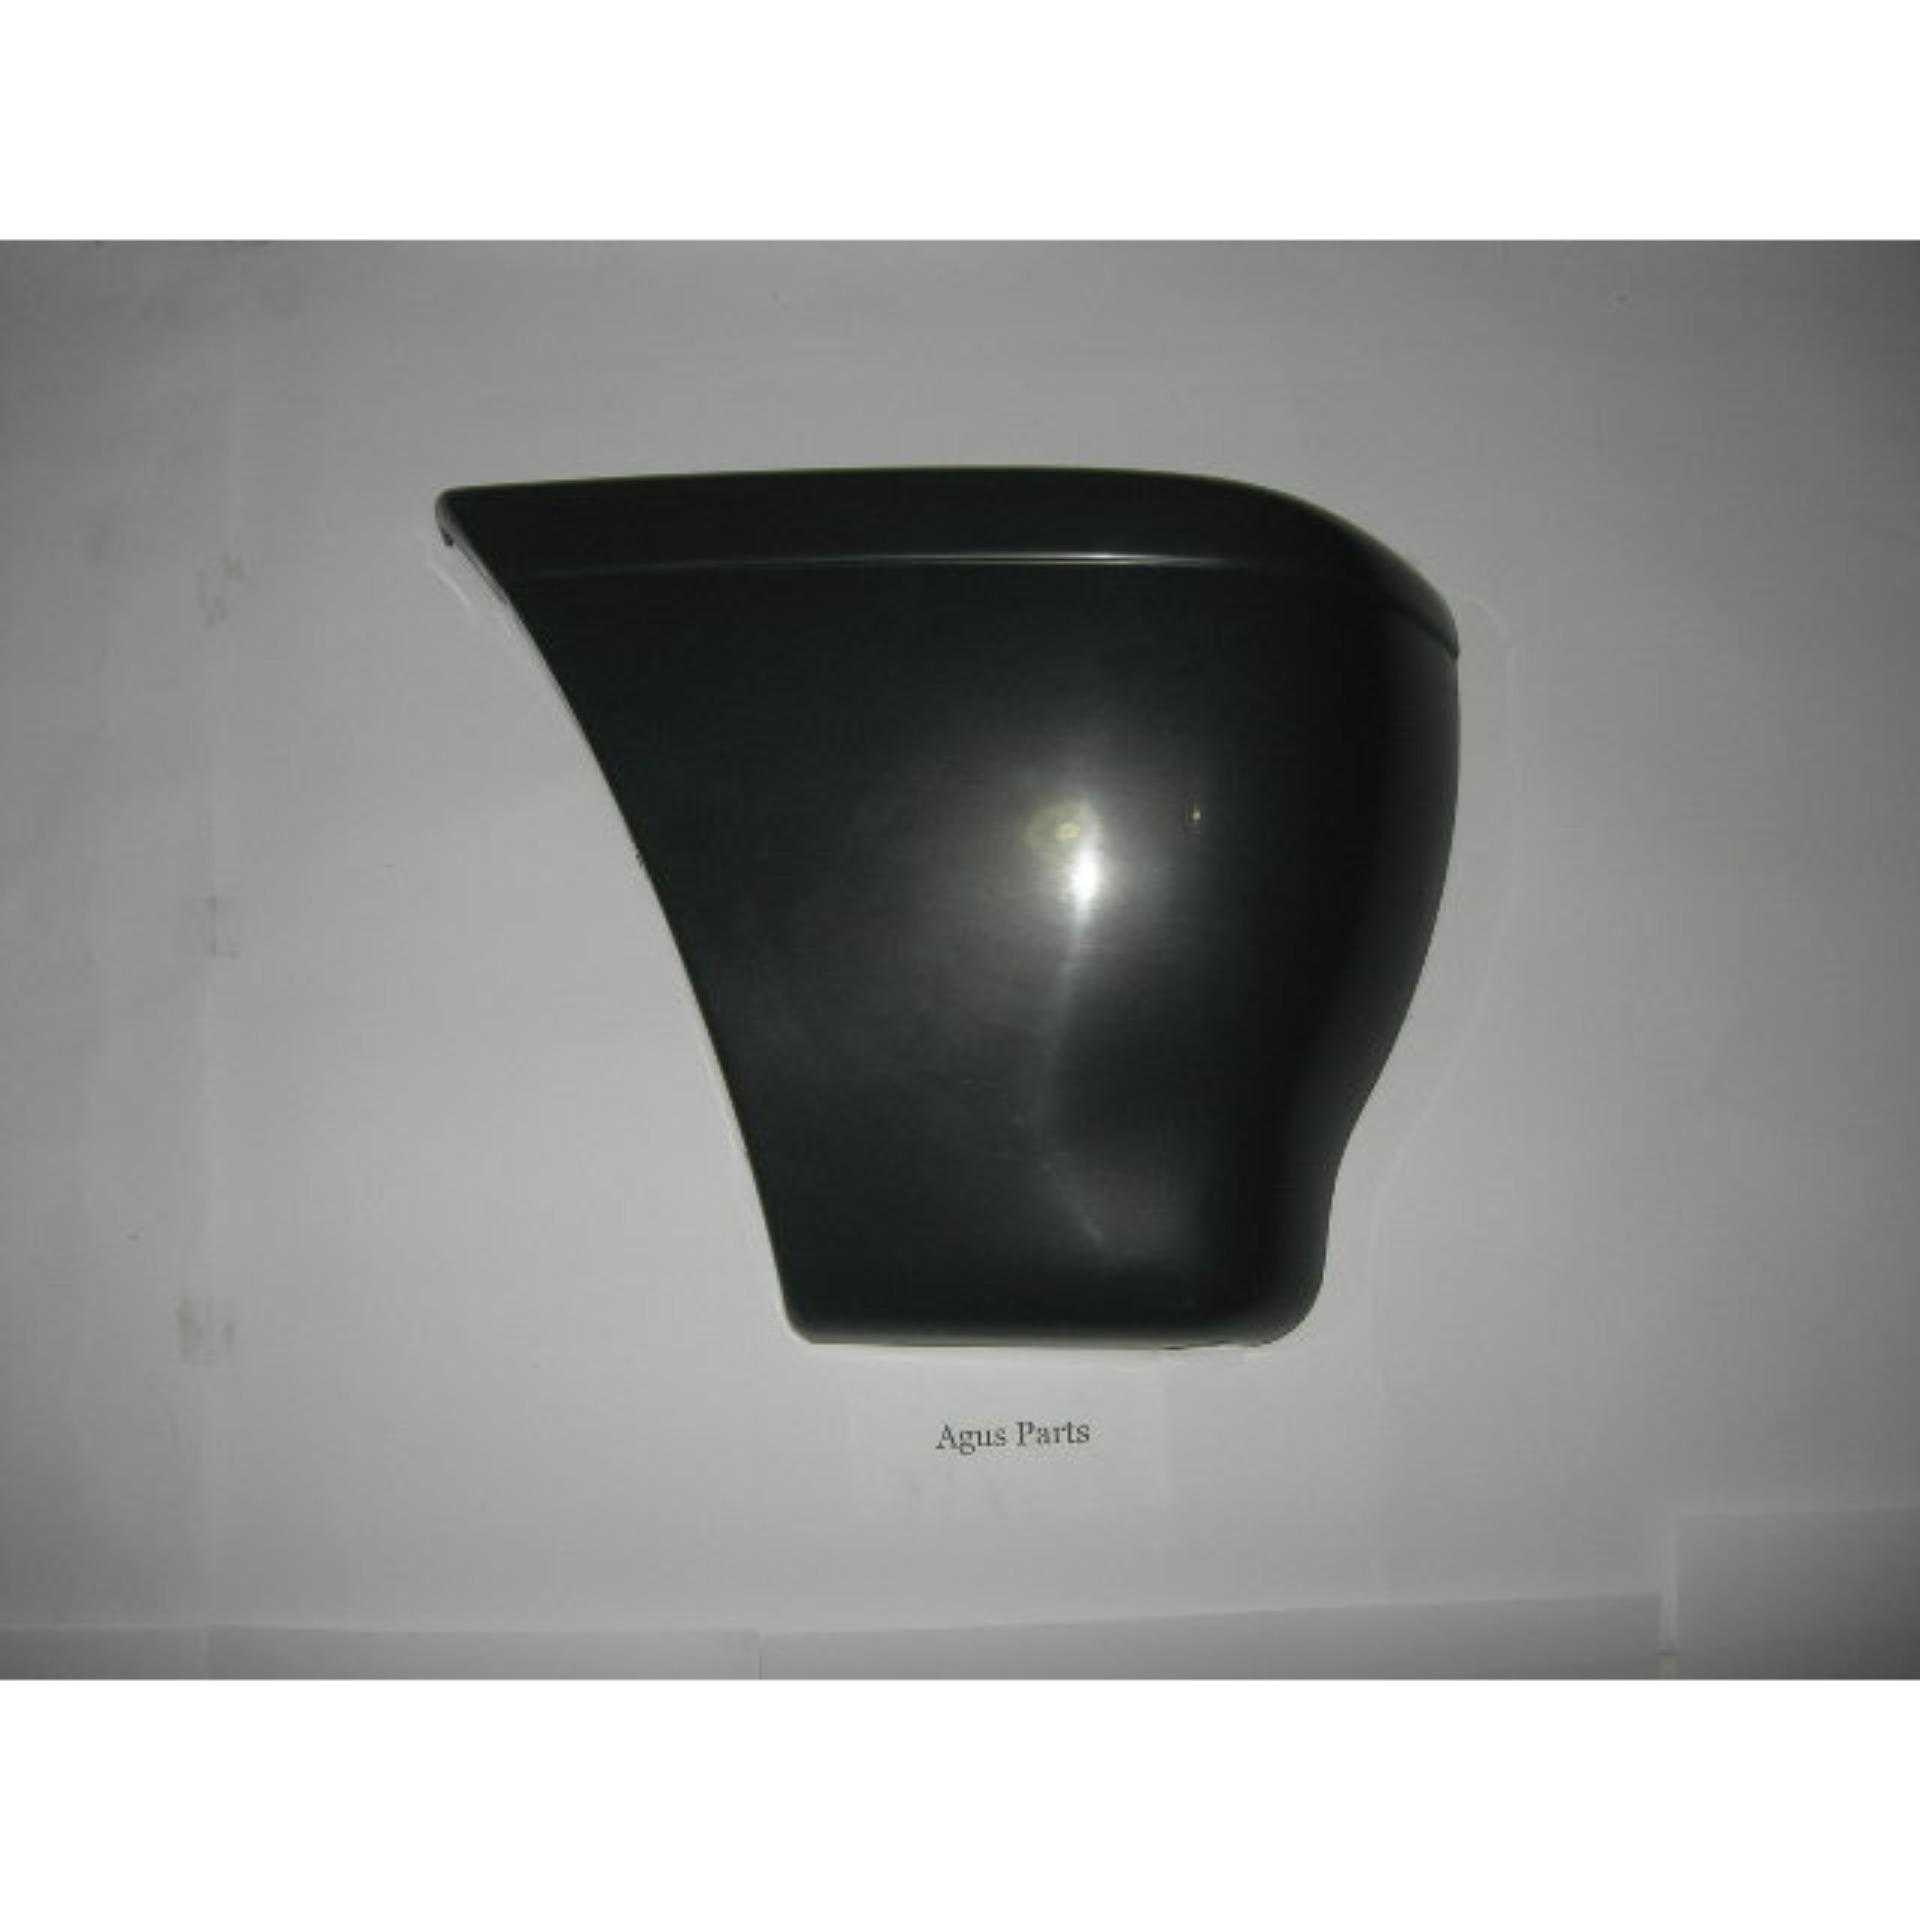 Isuzu Sepatu Bumper Depan Ori Panther Grand Royal/New Royal/Hi Grade/Hi Sporty/Pick Up dll tahun 1992-2000 (1 Pcs)